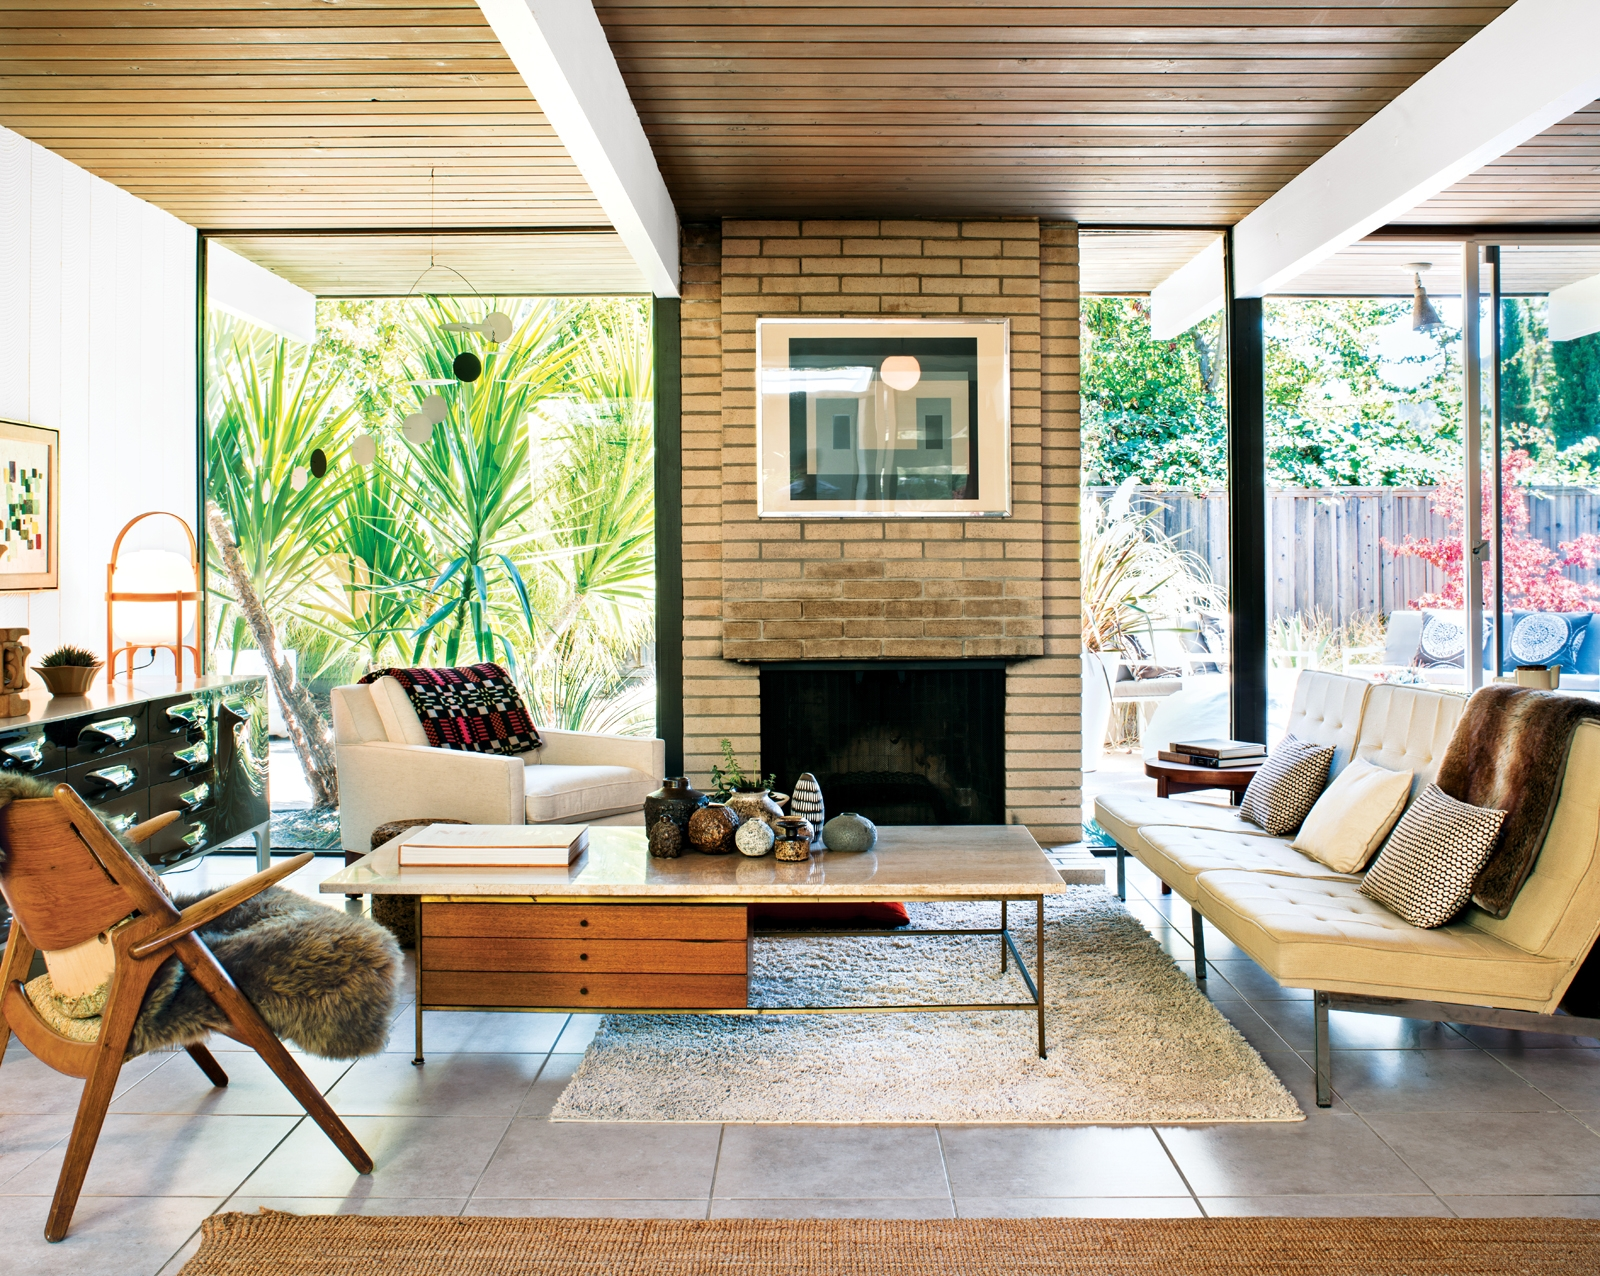 17 Best Images About Modern Home On Pinterest Pertaining To Florence Knoll Living Room Sofas (Photo 15 of 15)